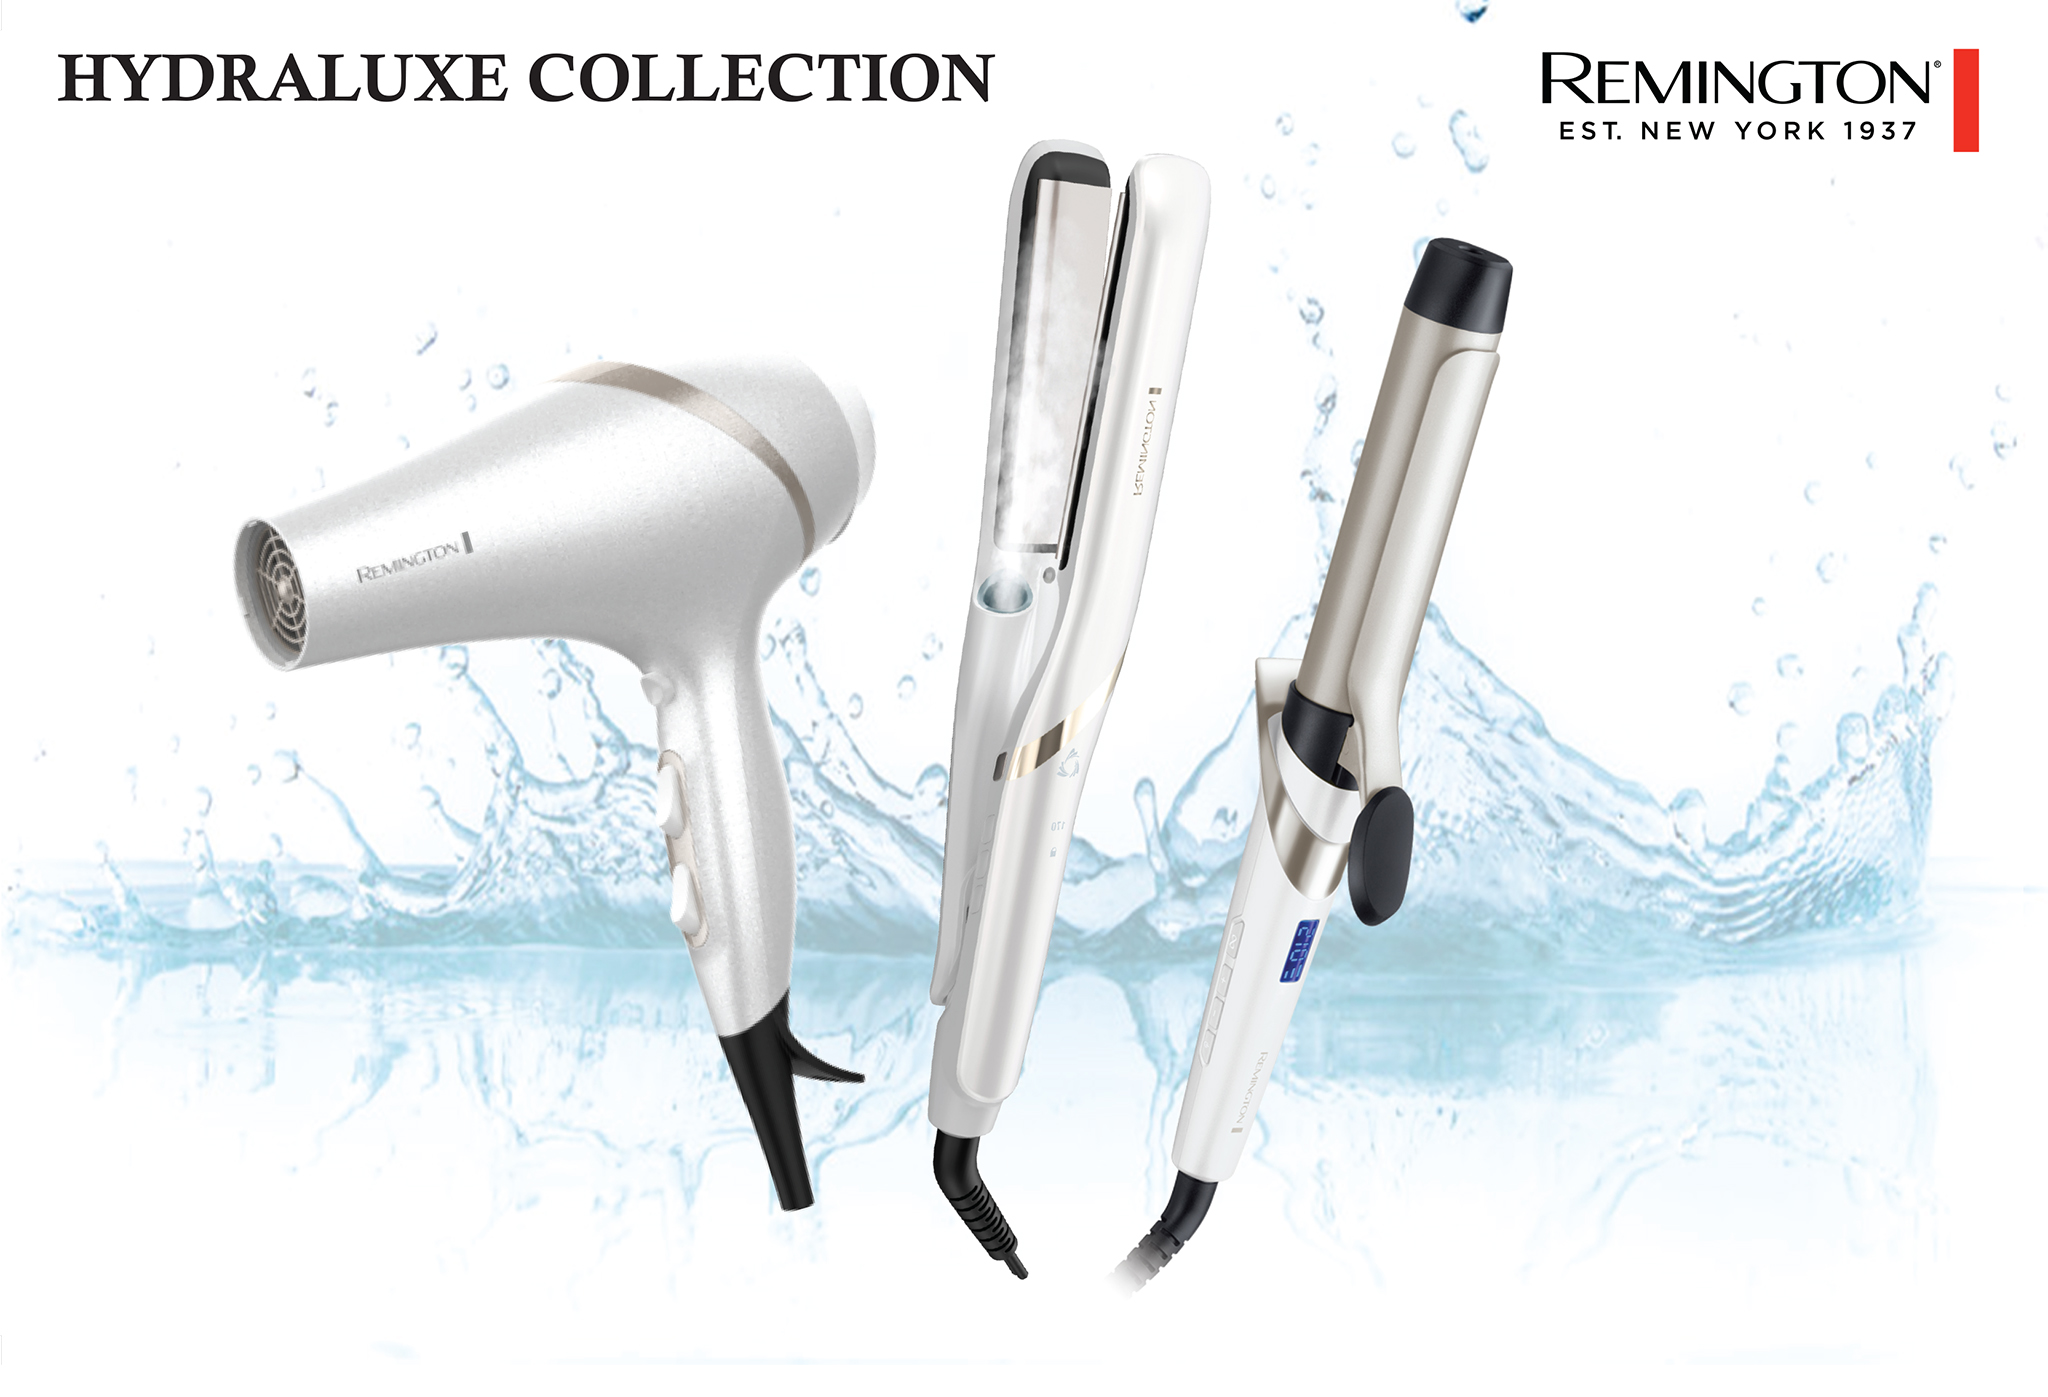 Remington Hydraluxe collection